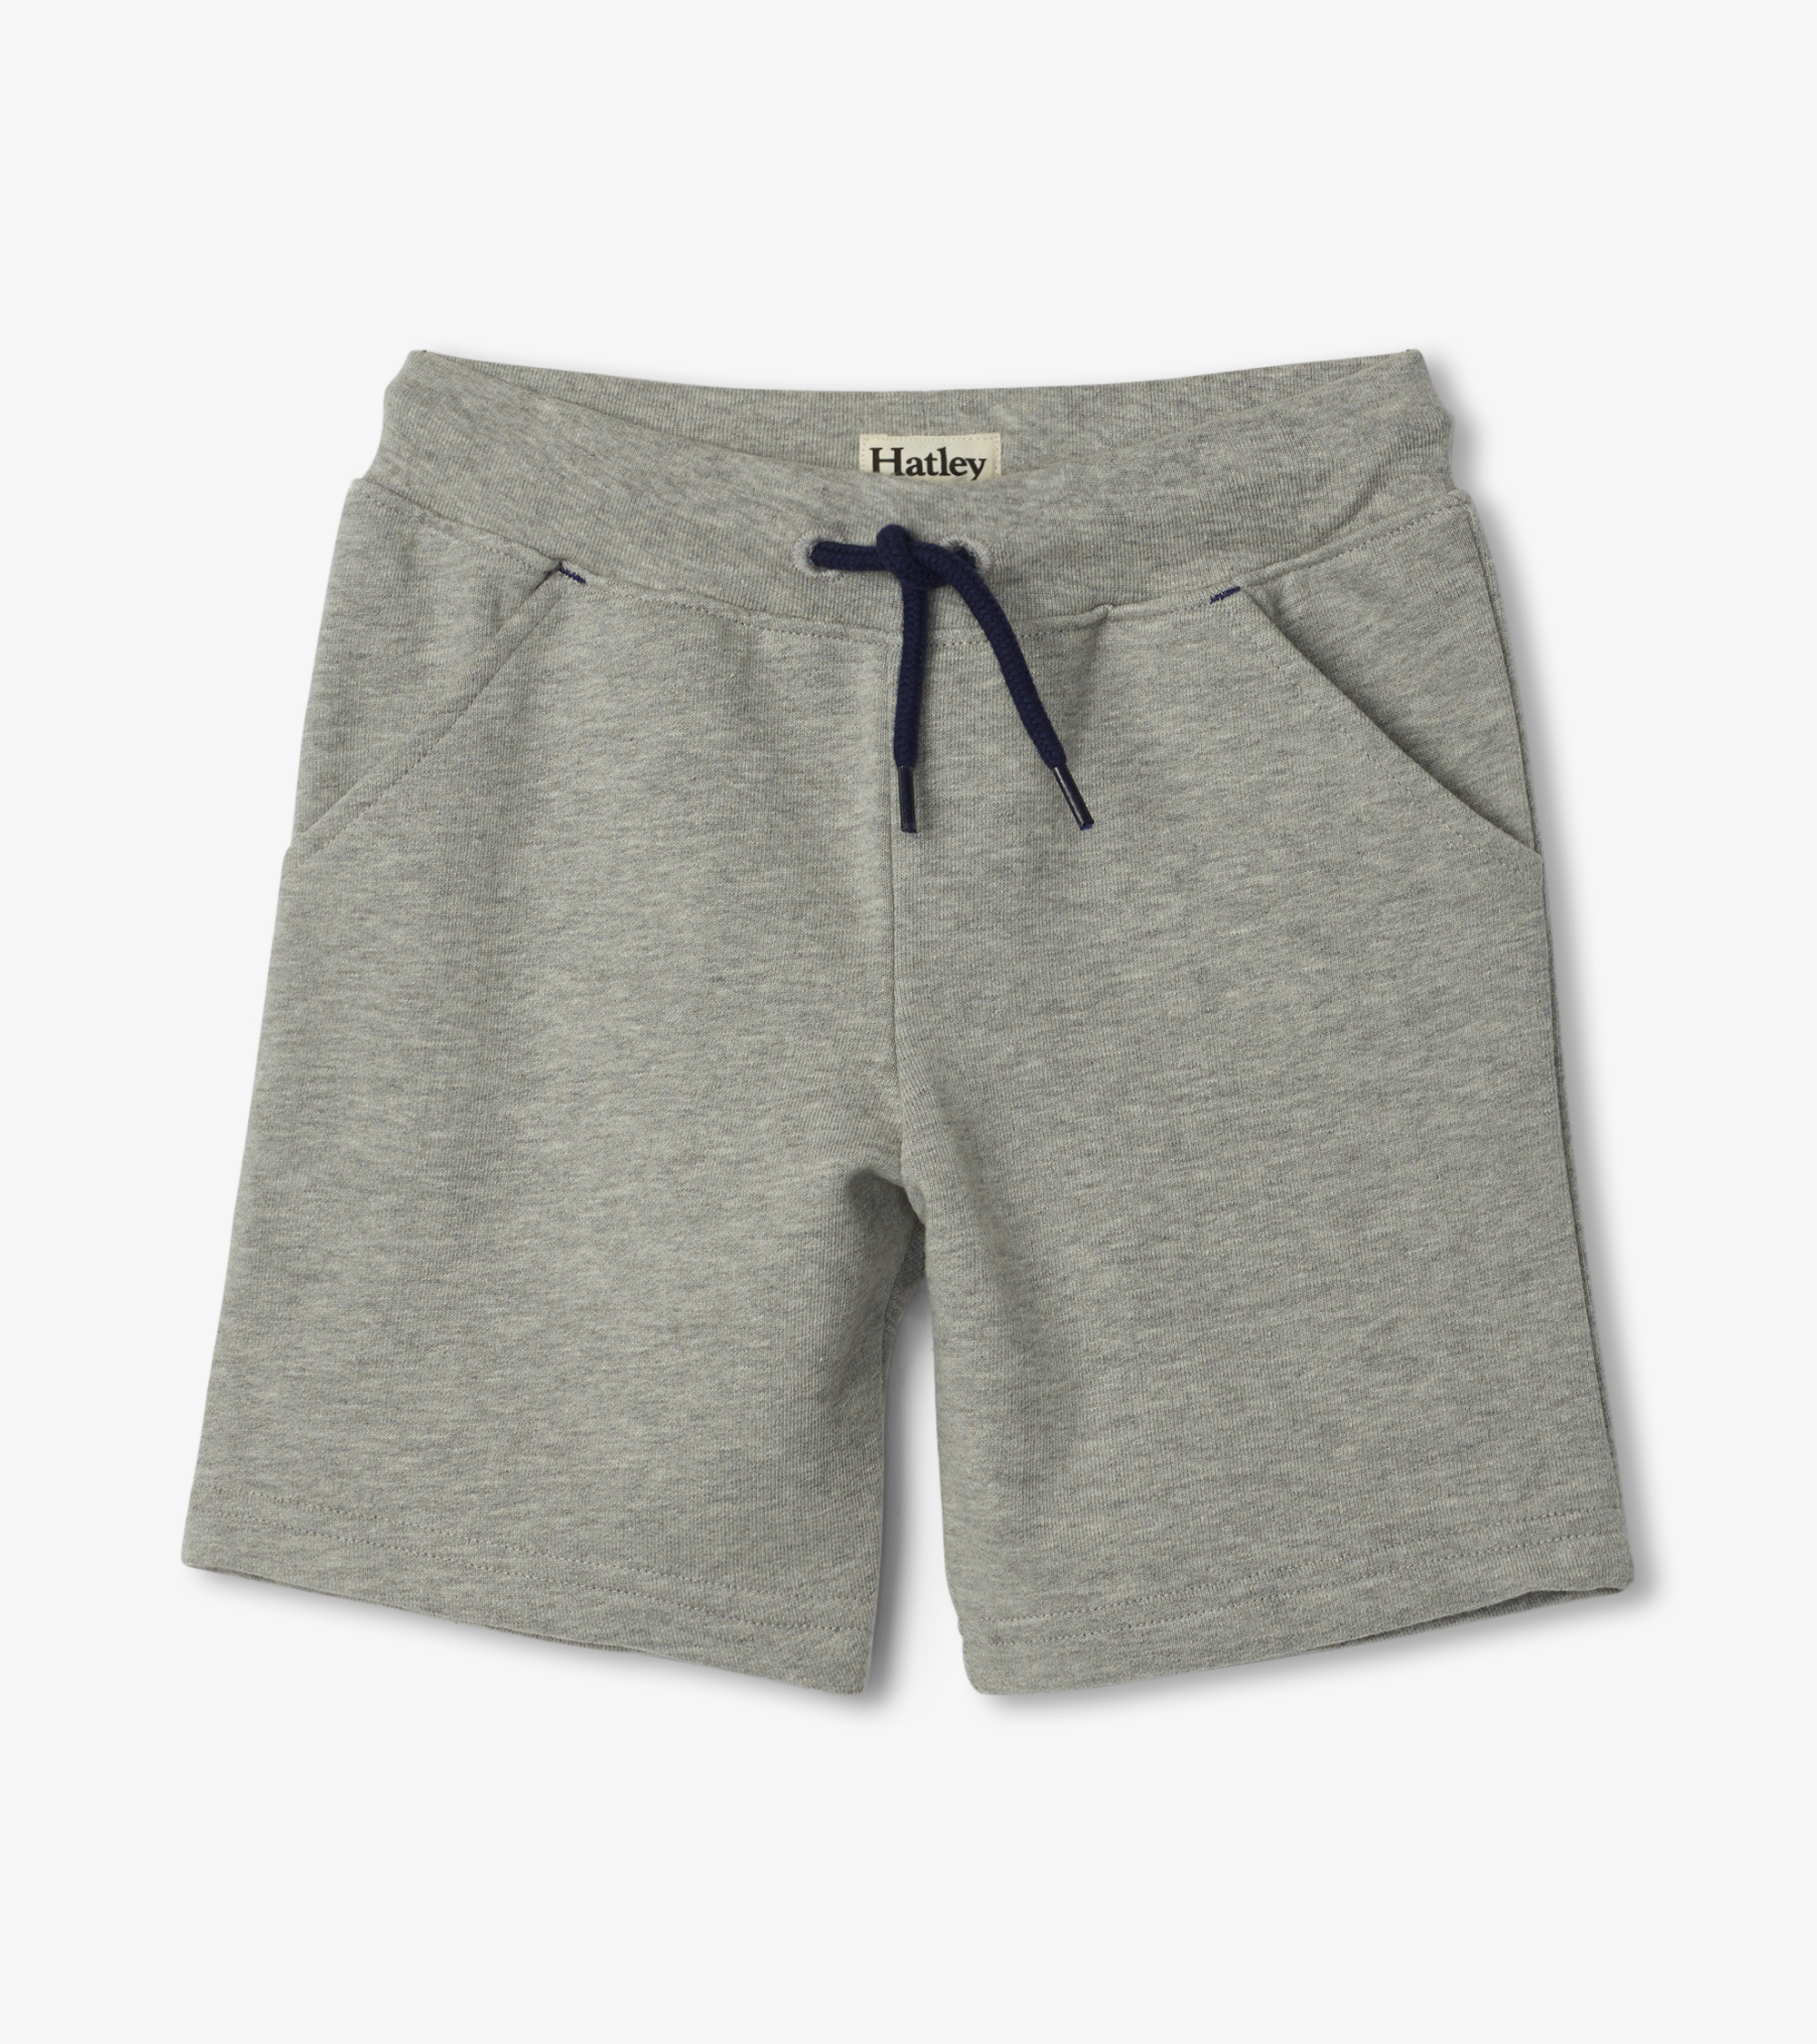 Hatley Athletic Terry Shorts Grey